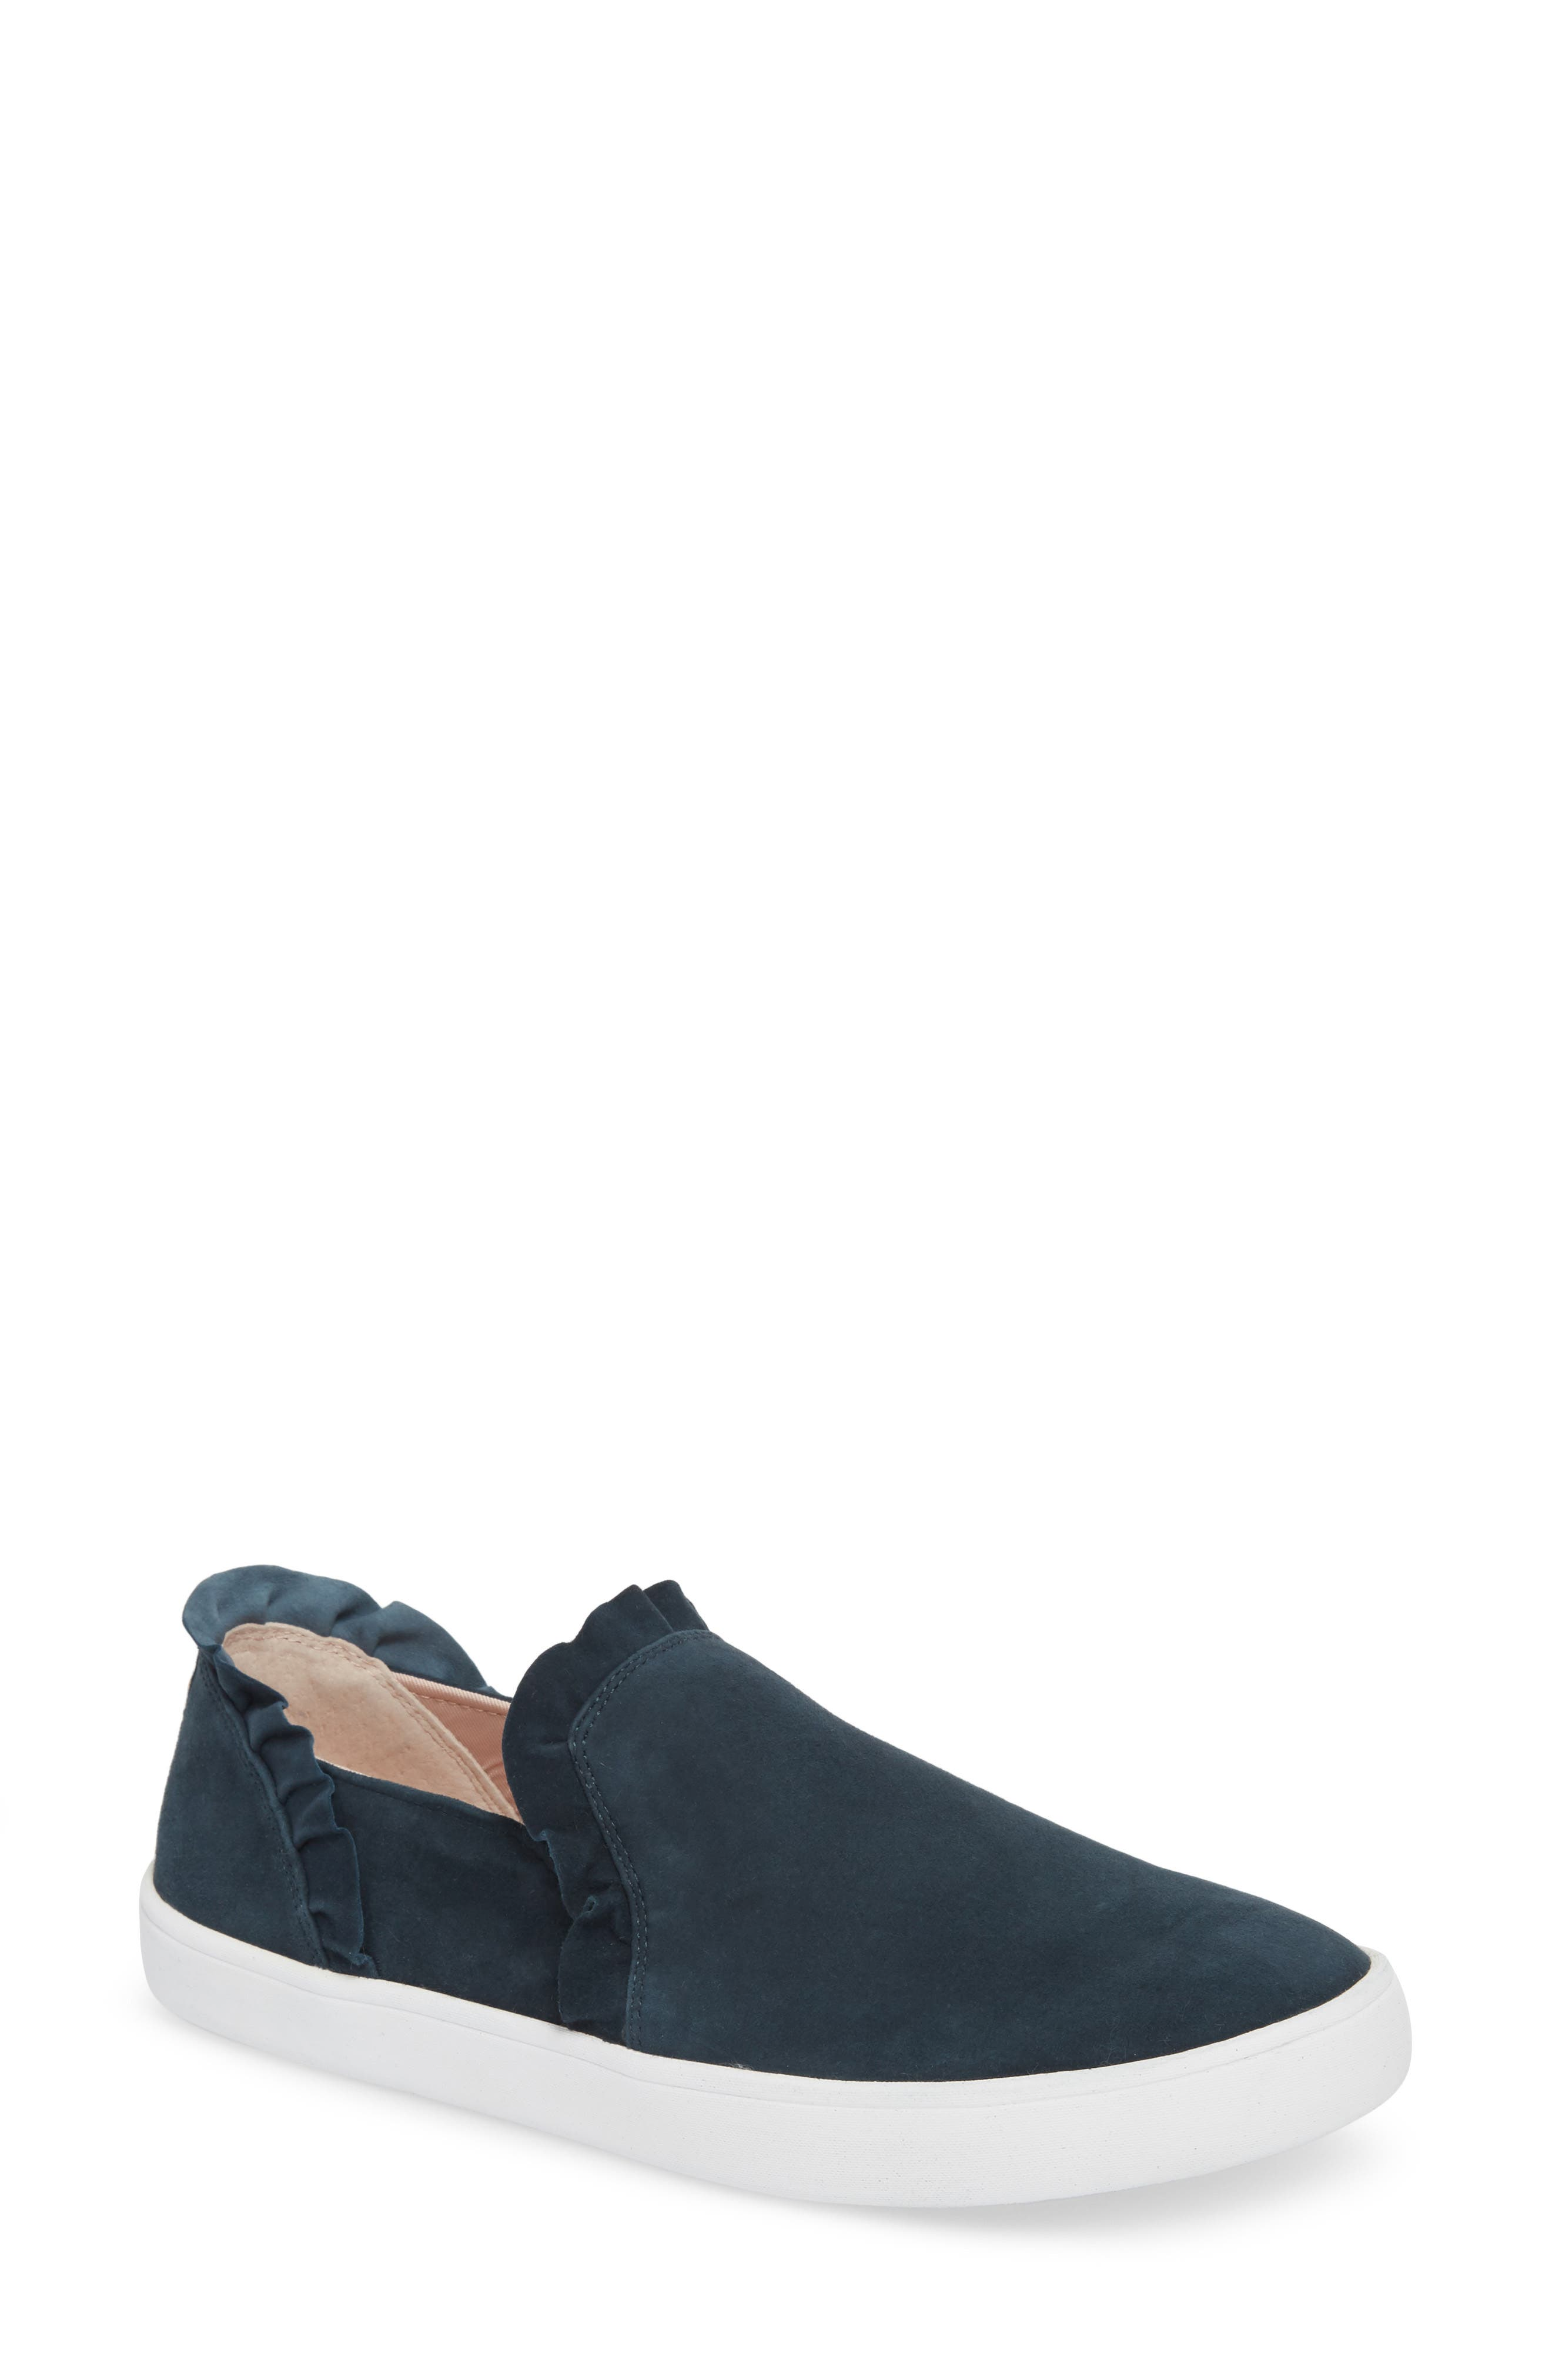 lilly ruffle slip-on sneaker,                         Main,                         color, Navy